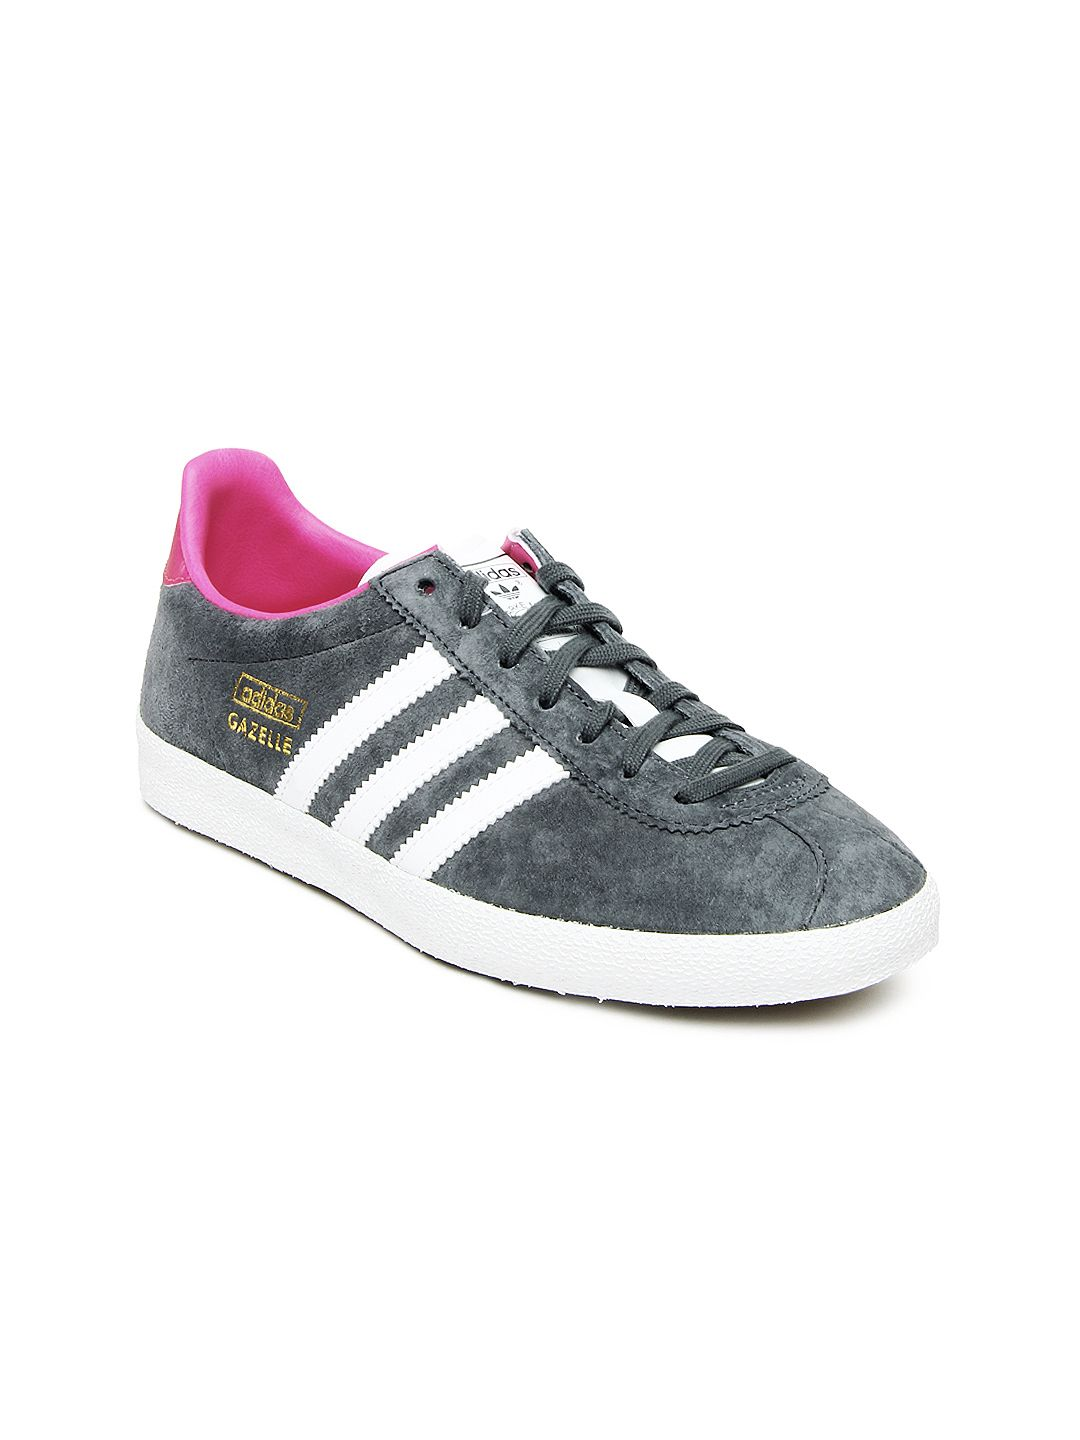 adidas casual shoes women